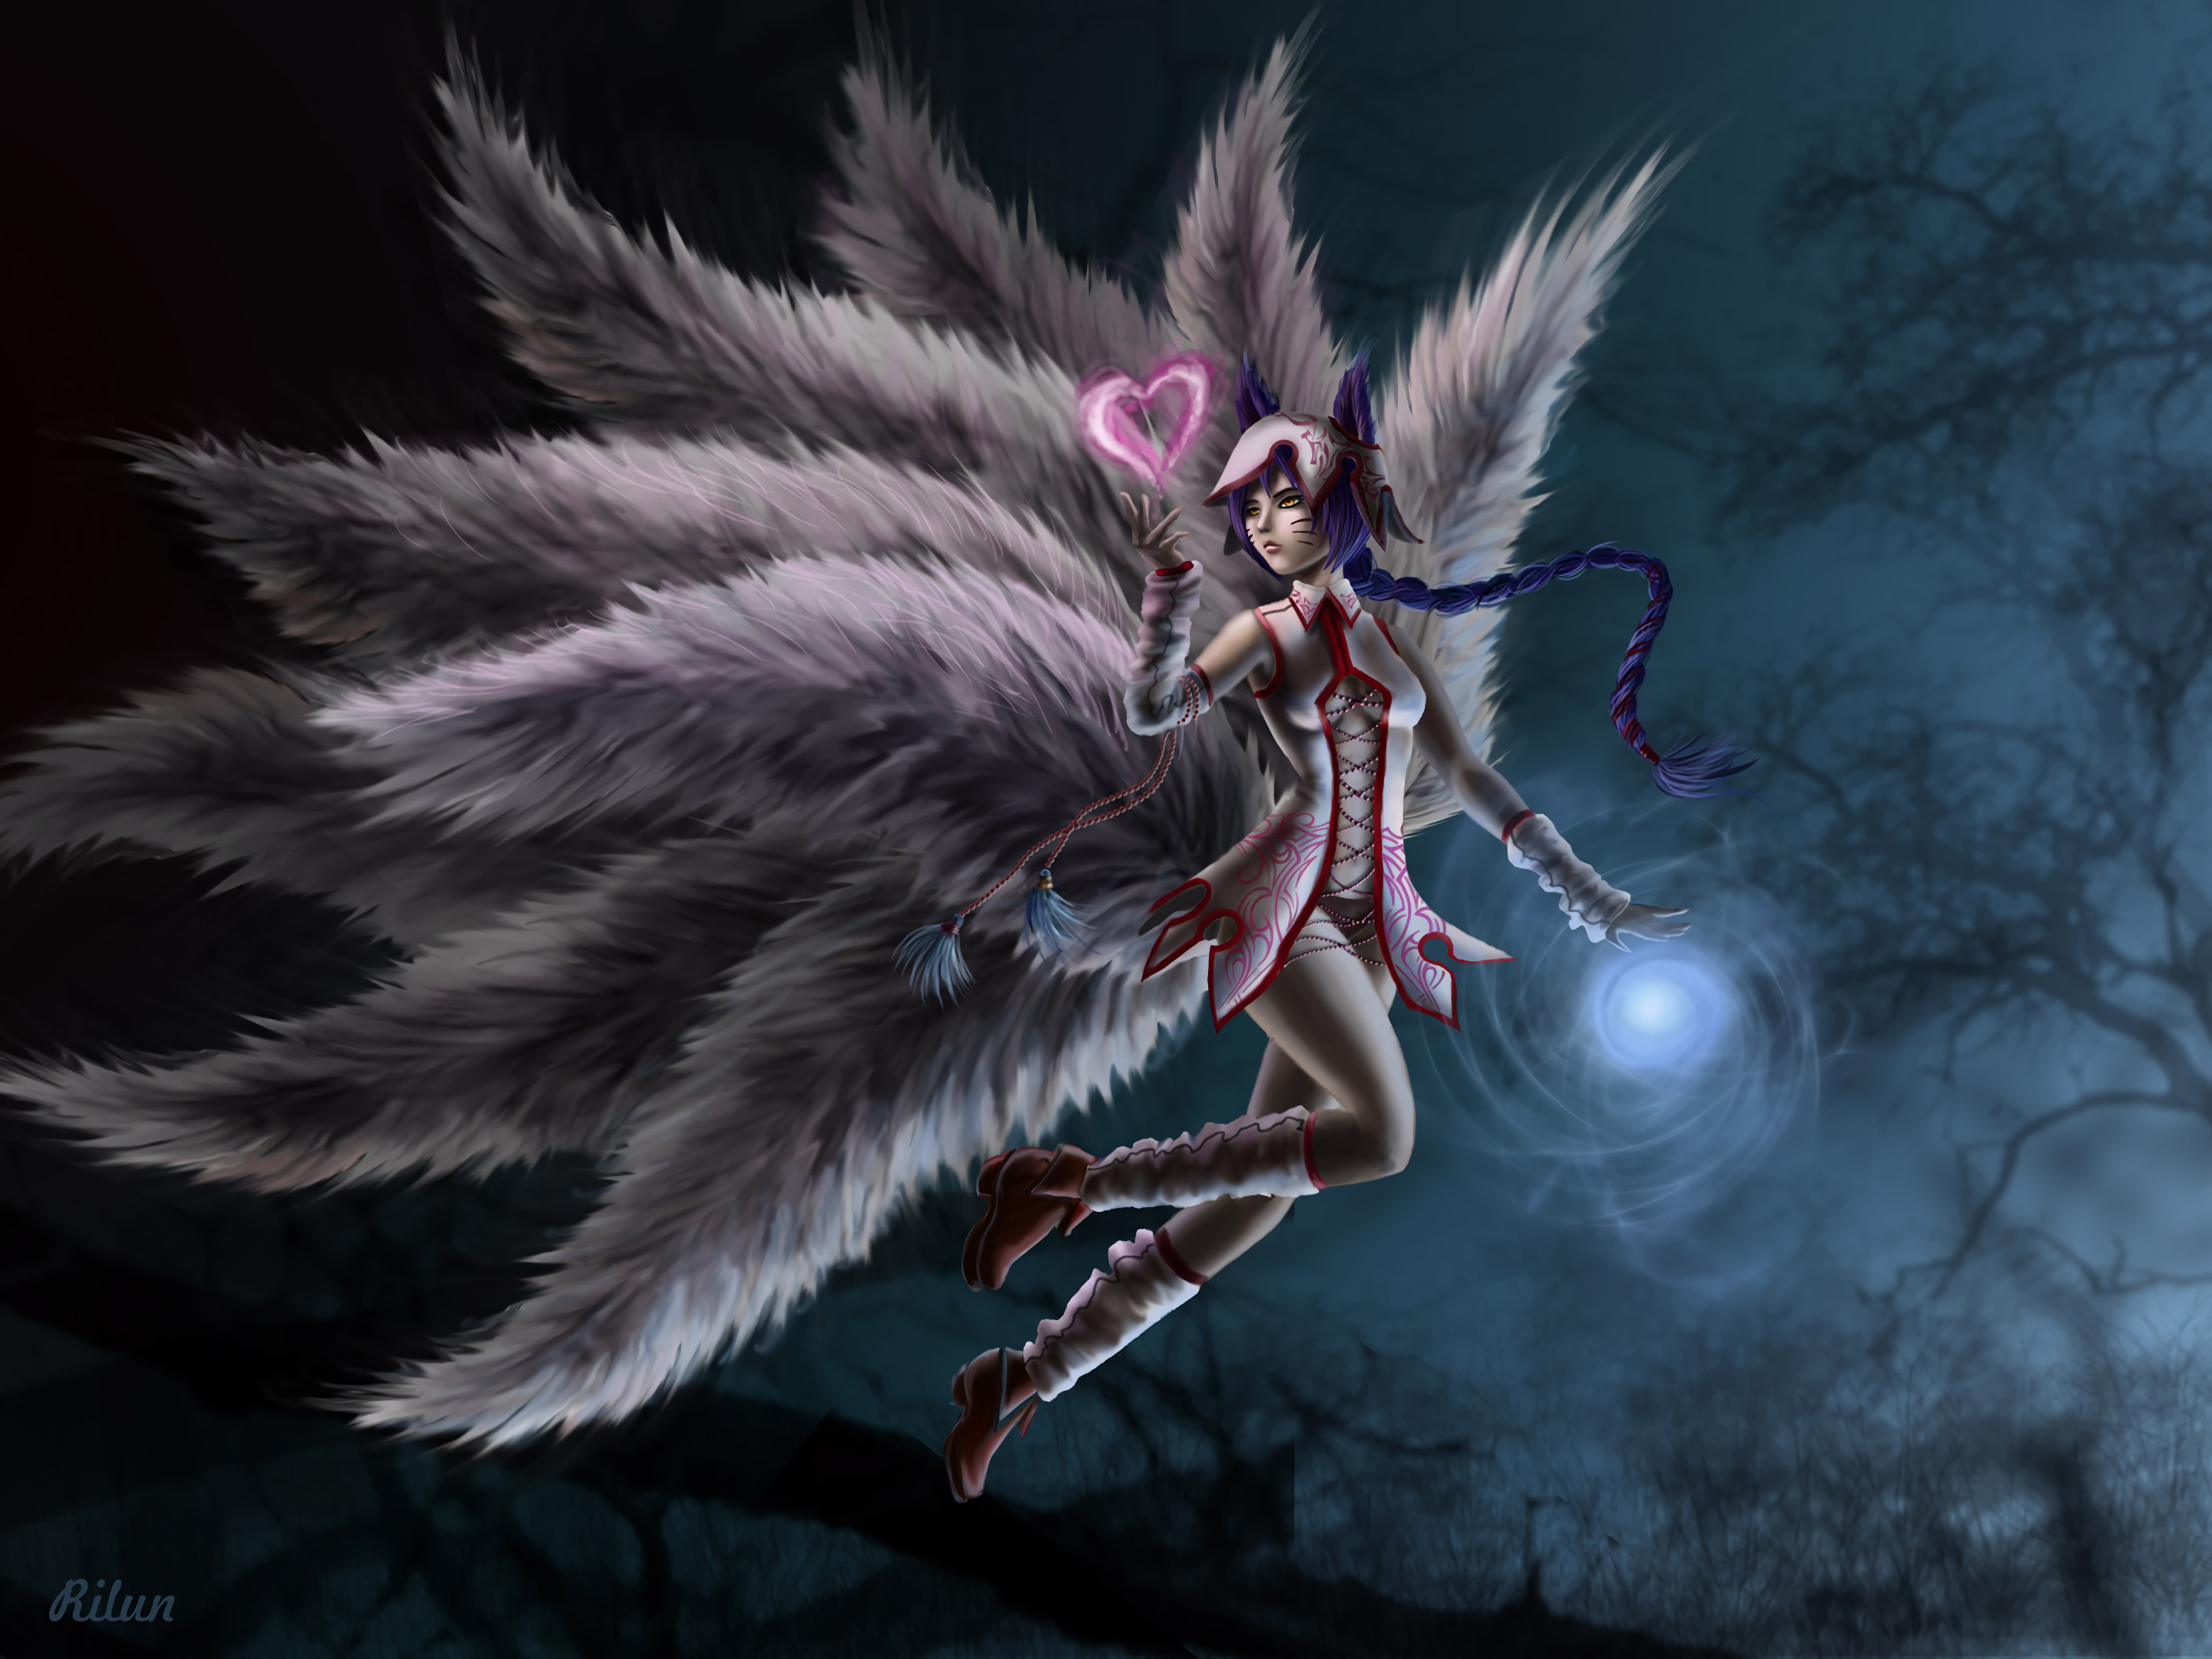 Sculpture Hd Wallpapers League Of Legends Ahri Art Hd Games 4k Wallpapers